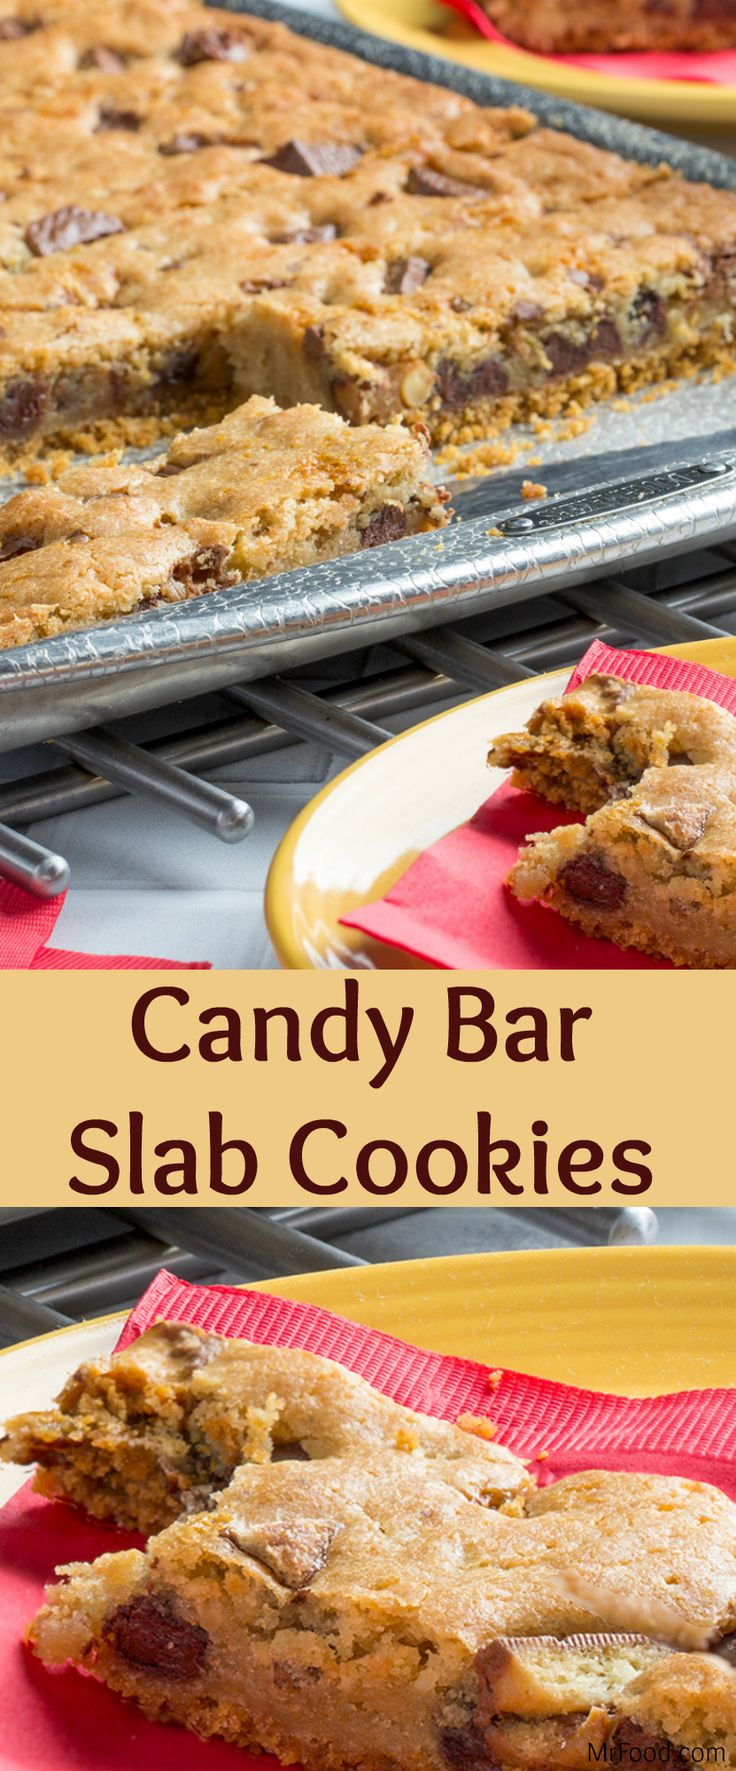 Need a dessert that'll feed a crowd? You've got it! These Candy Bar Slab Cookies are made on a baking sheet, so you end up with enough to satisfy everyone's sweet tooth! Plus, these slab cookies feature a winning combo of graham cracker crust, chocolate chips, walnuts, and...wait for it...your favorite chopped up candy bars. Yum!